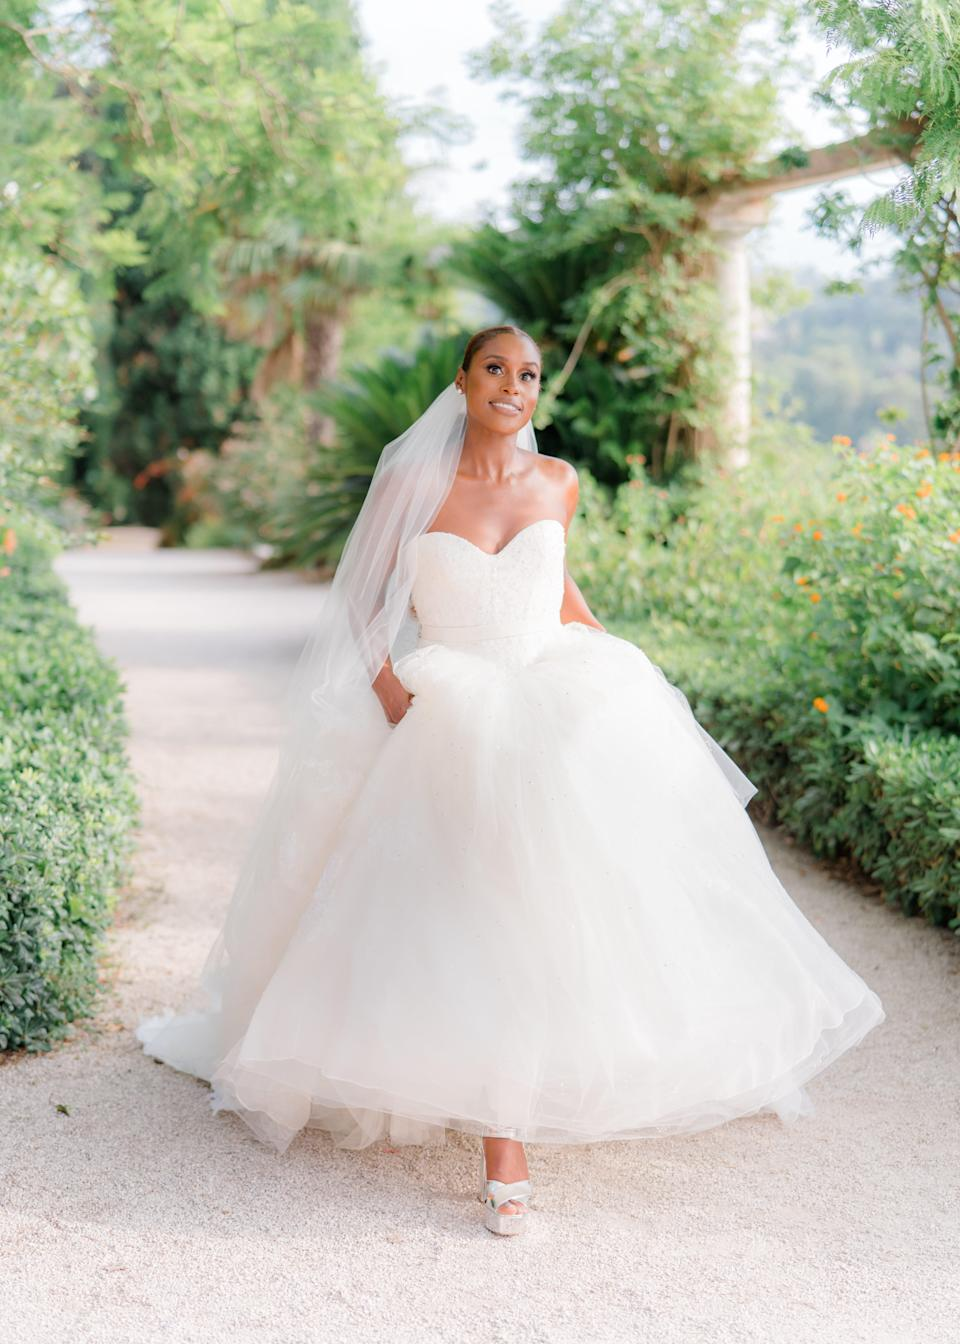 Issa Rae chose a custom light ivory strapless sweetheart neckline ballgown with hand placed Chantilly lace accented by hand sewn crystal beading and a light ivory chapel length veil with hand placed Chantilly lace.